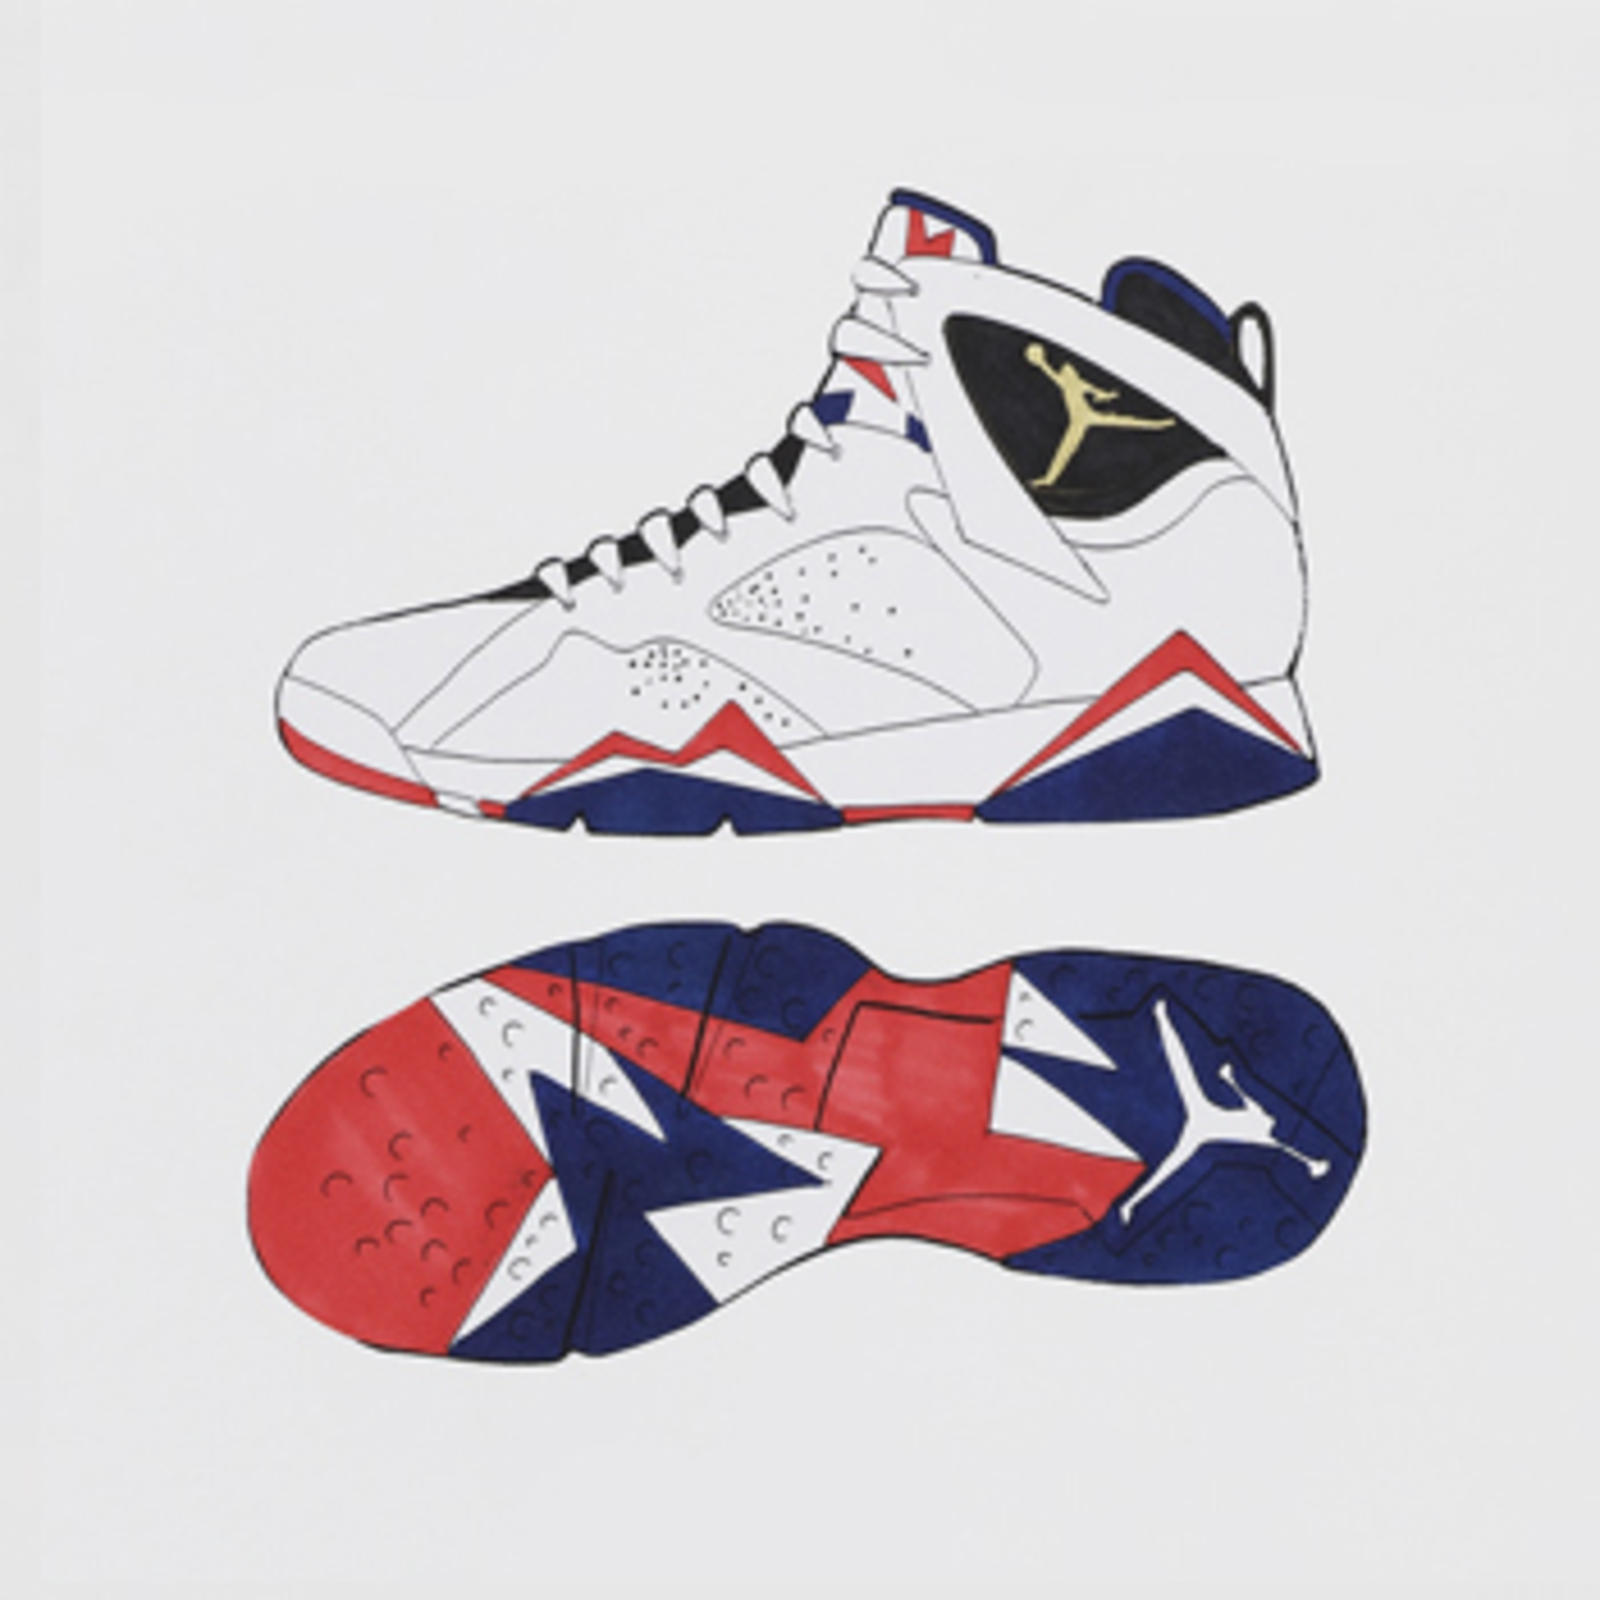 Air-Jordan-7-Alternate-Data-de-lançamento (1)